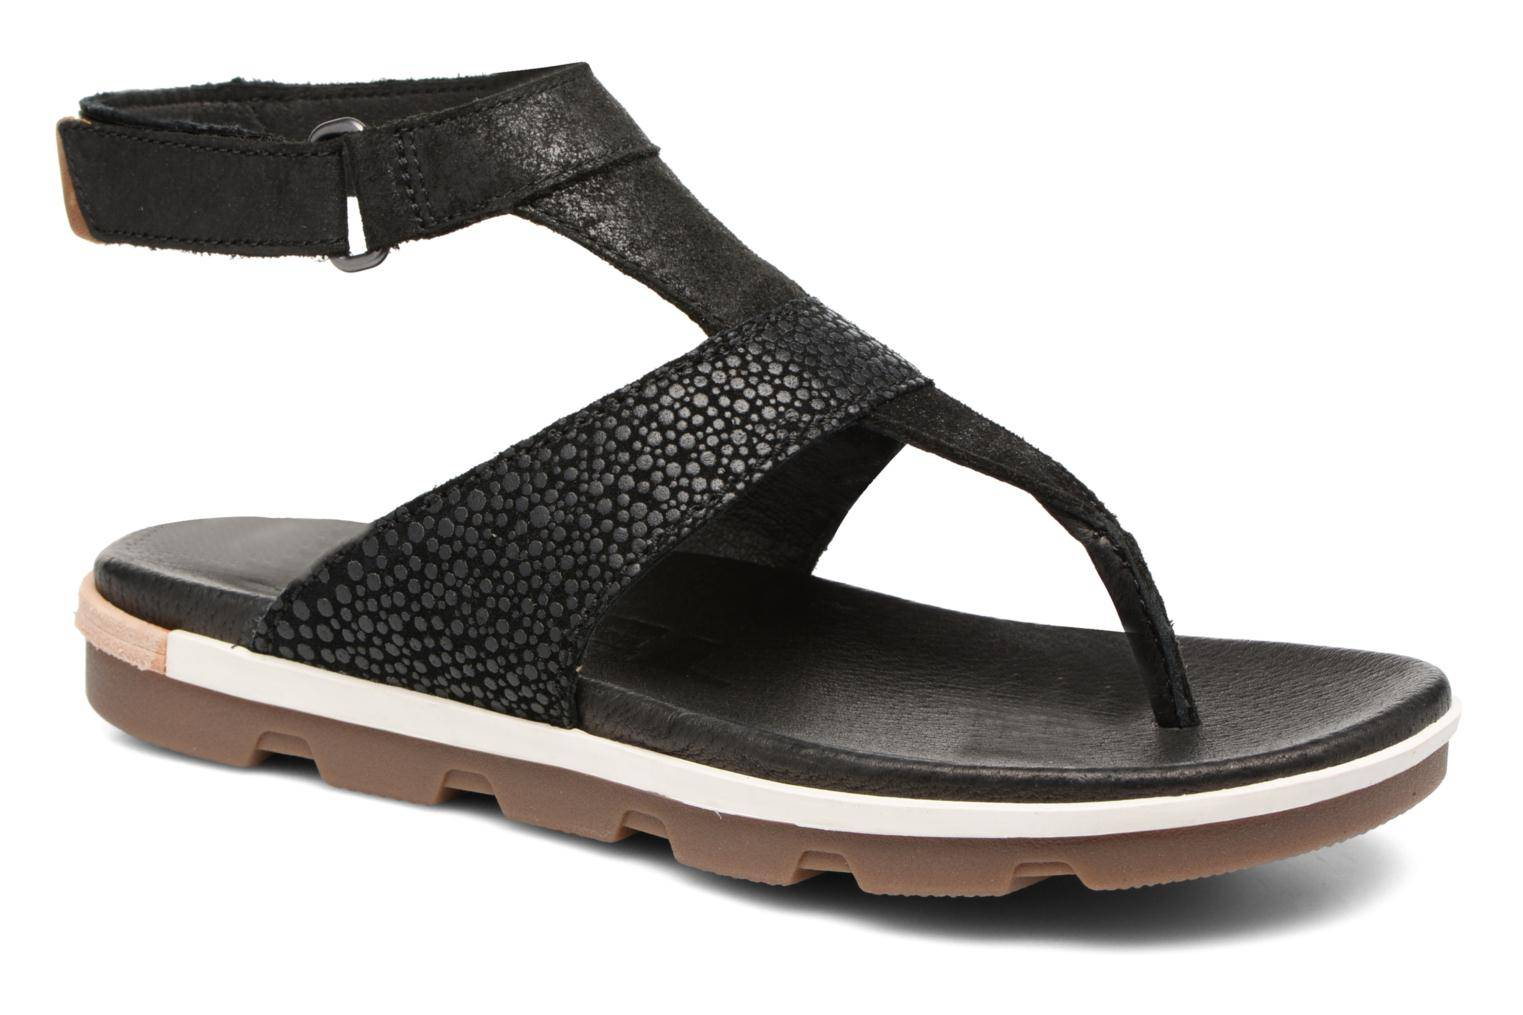 Sorel - Torpeda Ankle Strap by  - Sandaalit Naisille  / Musta